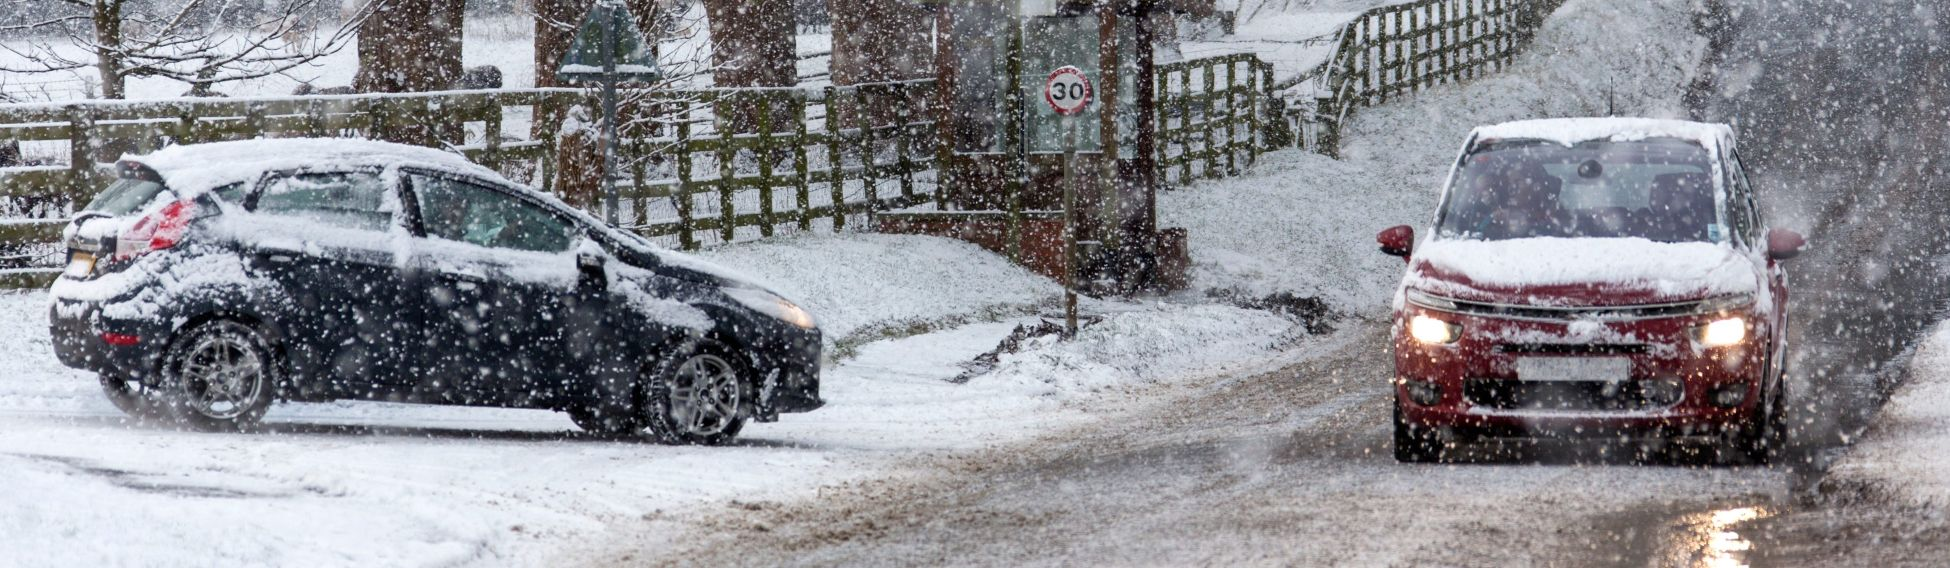 2 cars driving in the snow